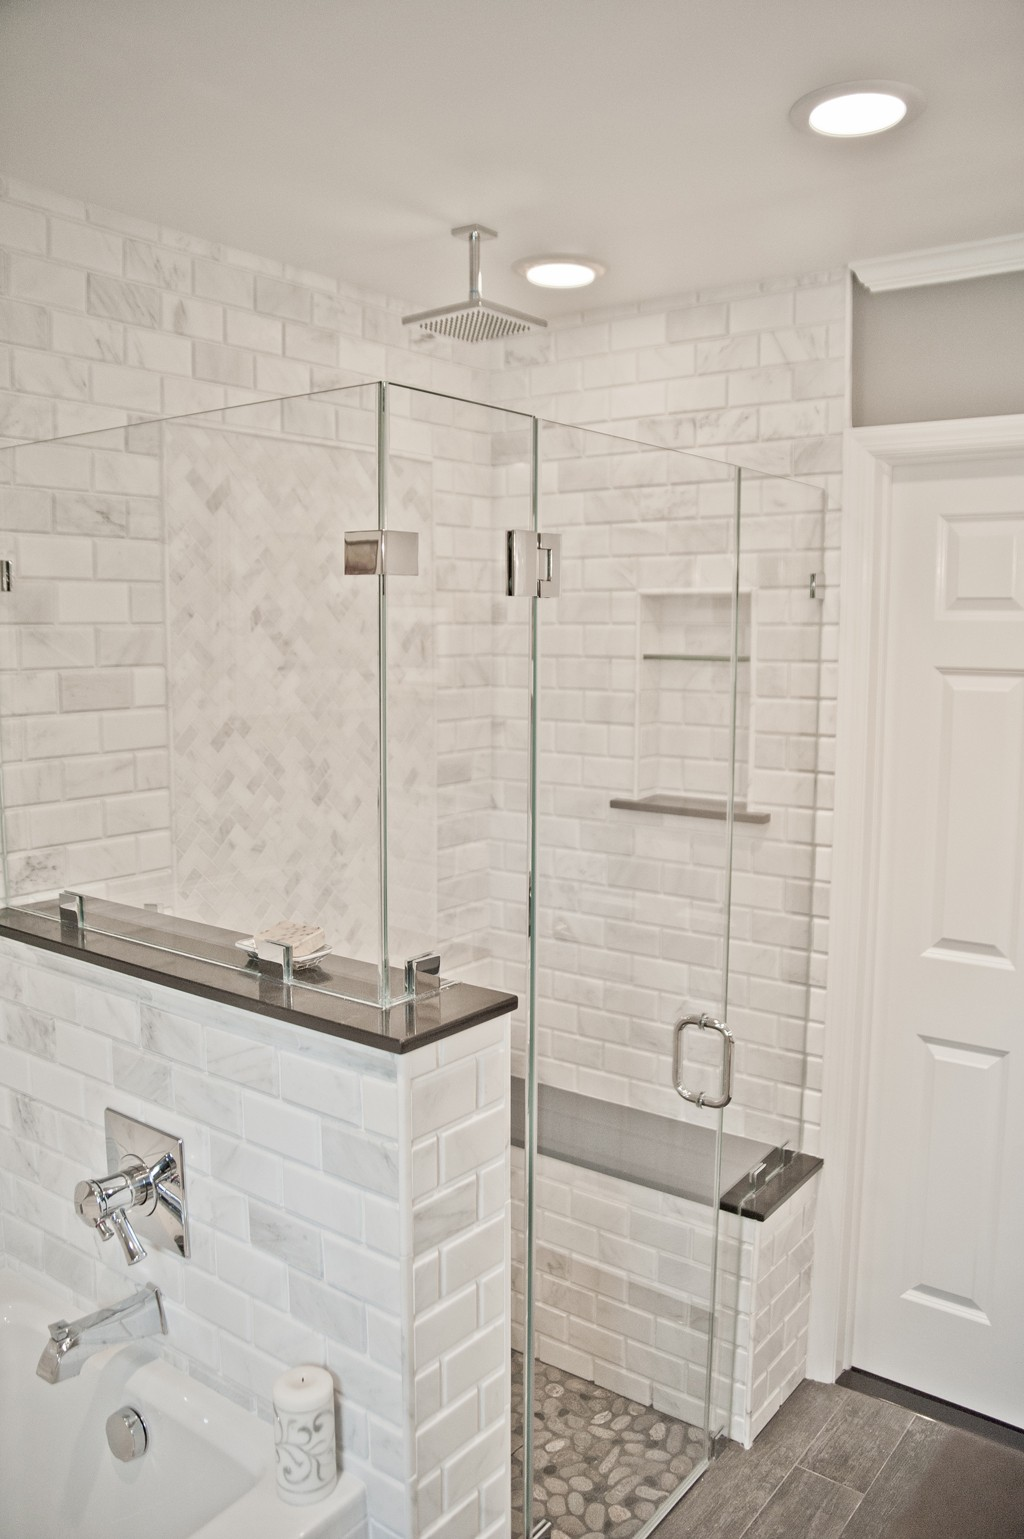 Bathroom Remodel In Somerset County Watchung NJ  2  Design Build Pros. Bathroom Remodel in Somerset County  NJ